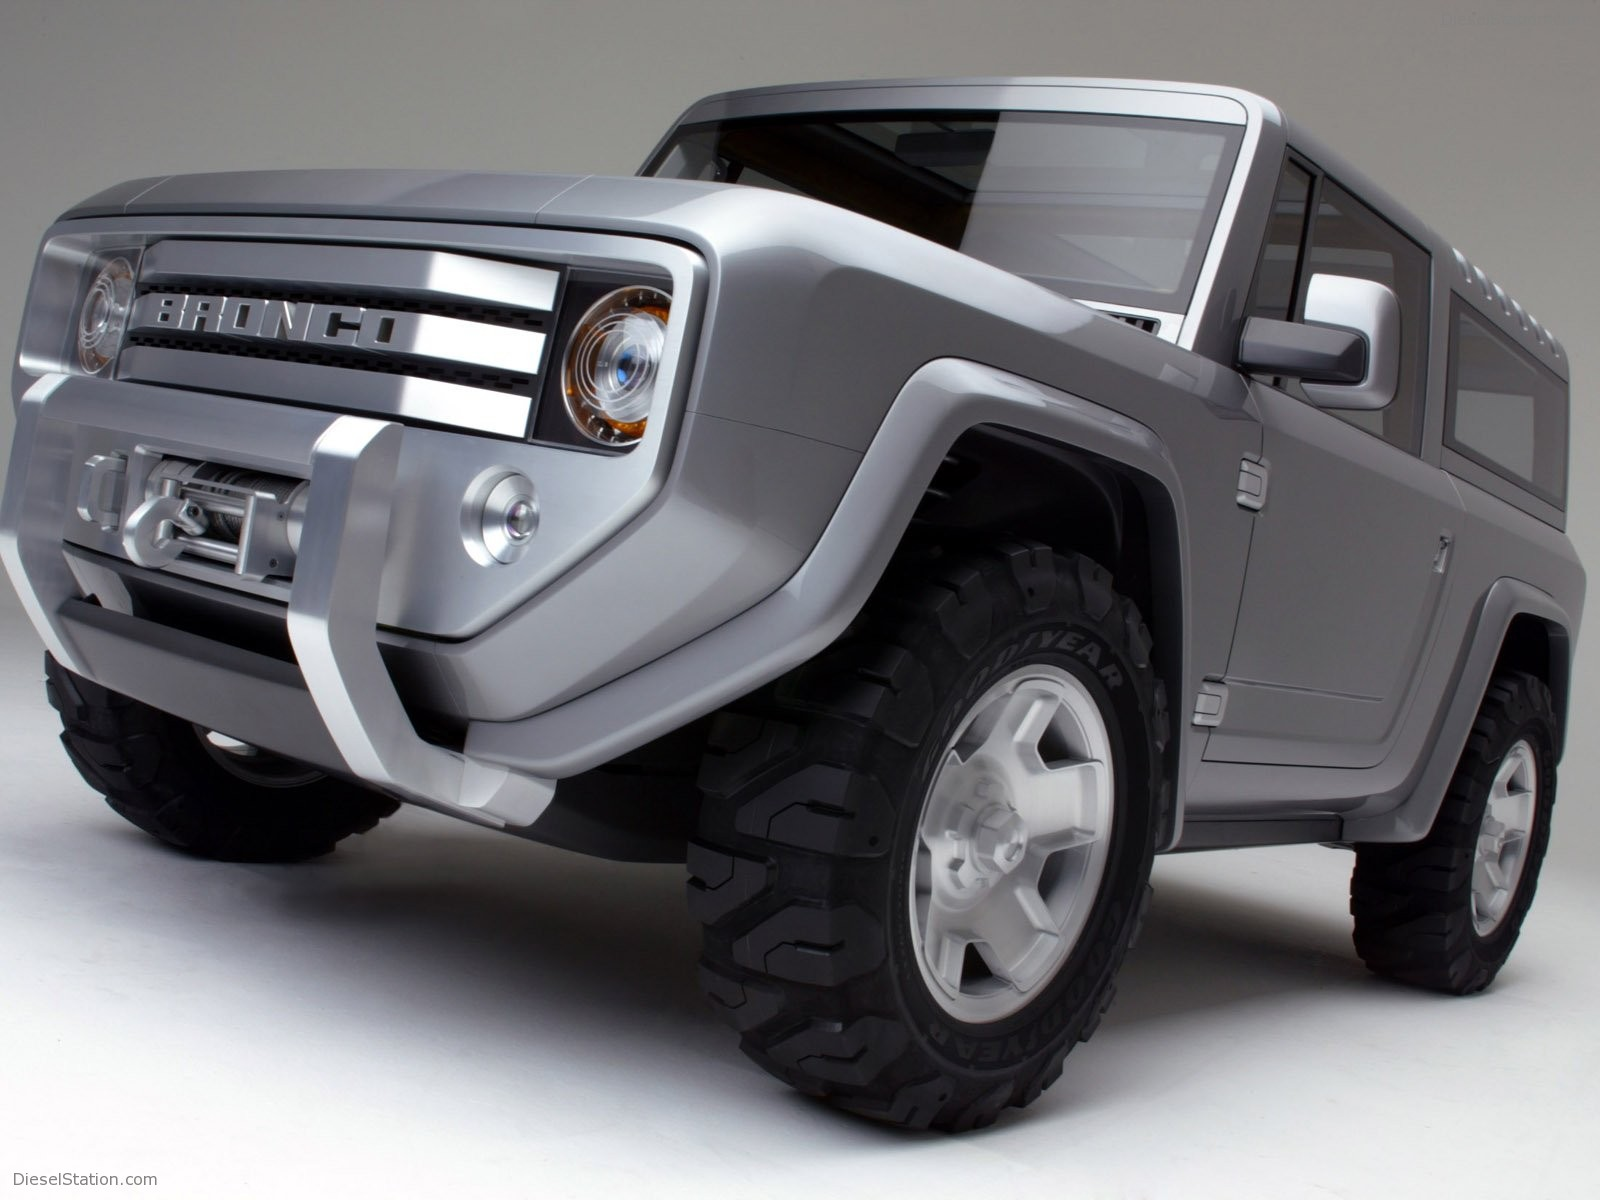 Ford bronco 2012 photo - 7